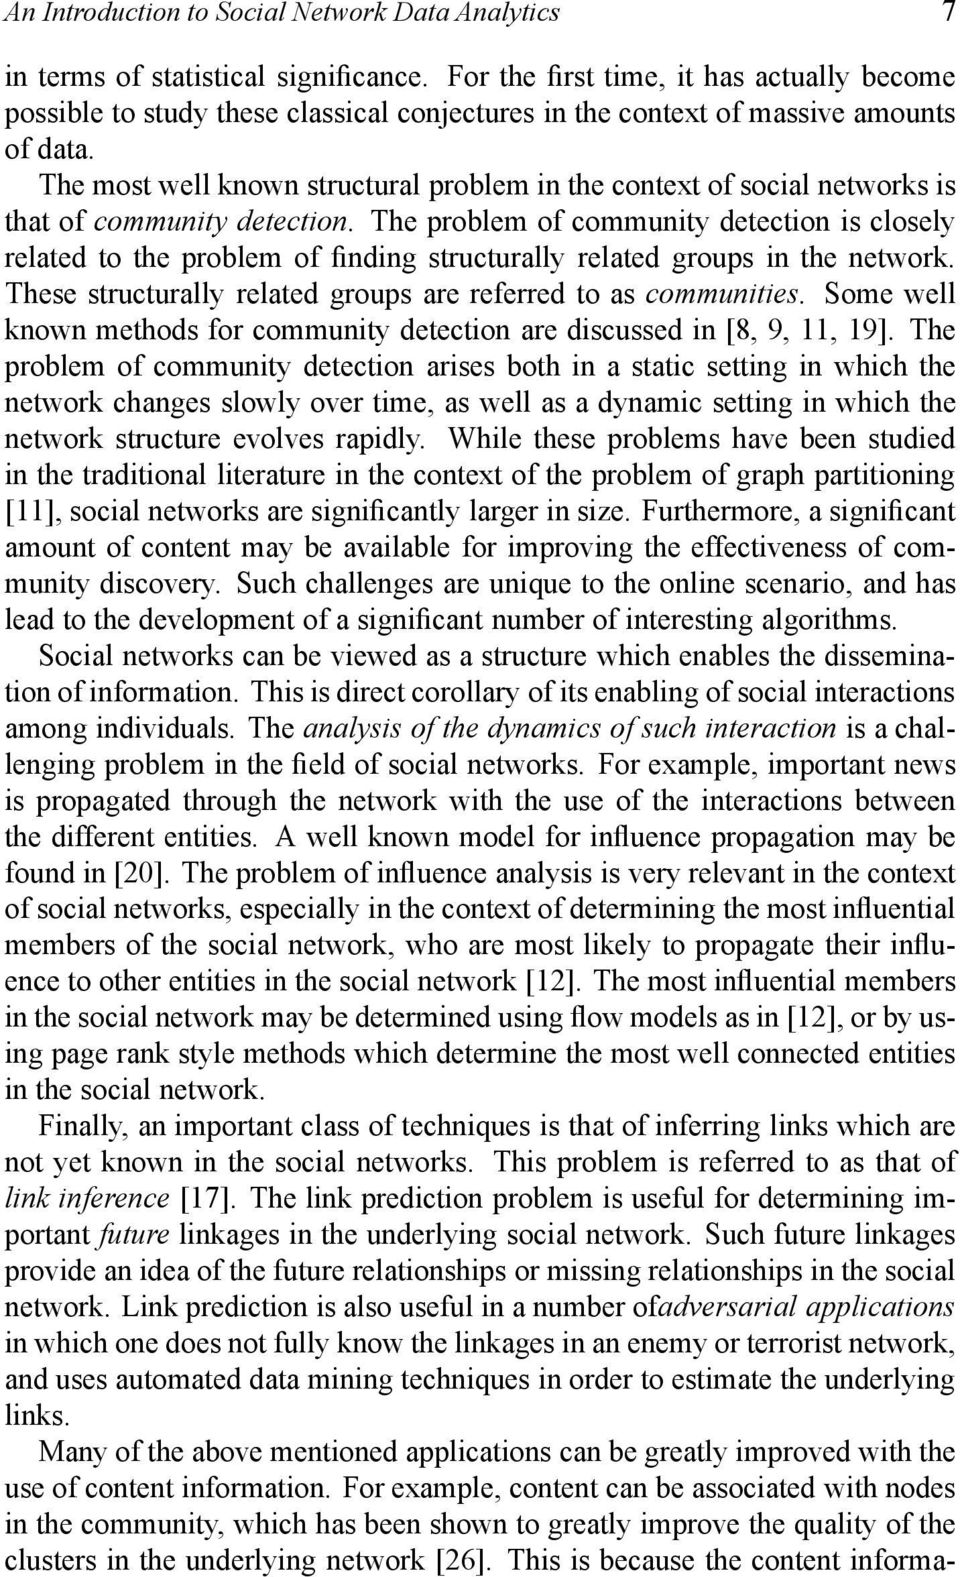 The most well known structural problem in the context of social networks is that of community detection.